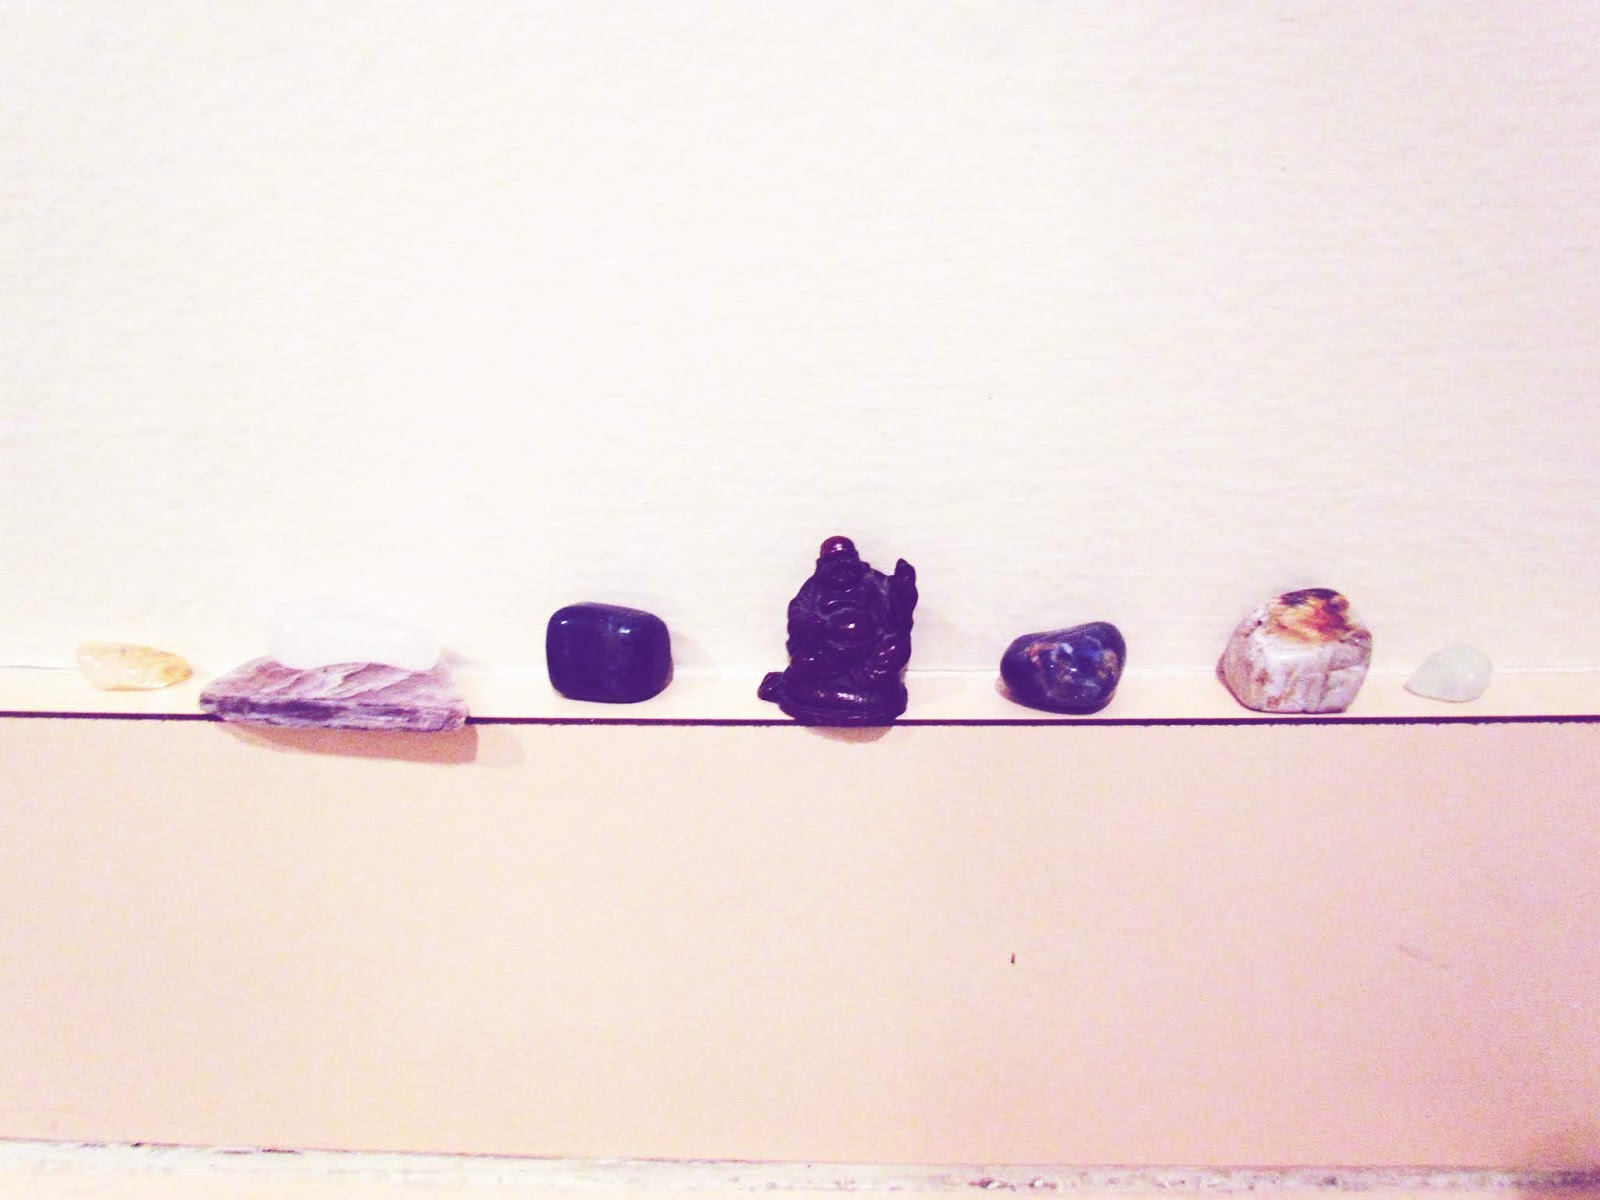 Gemstone + Tiny Buddha Statue Zen Flat Lay Arrangement in White